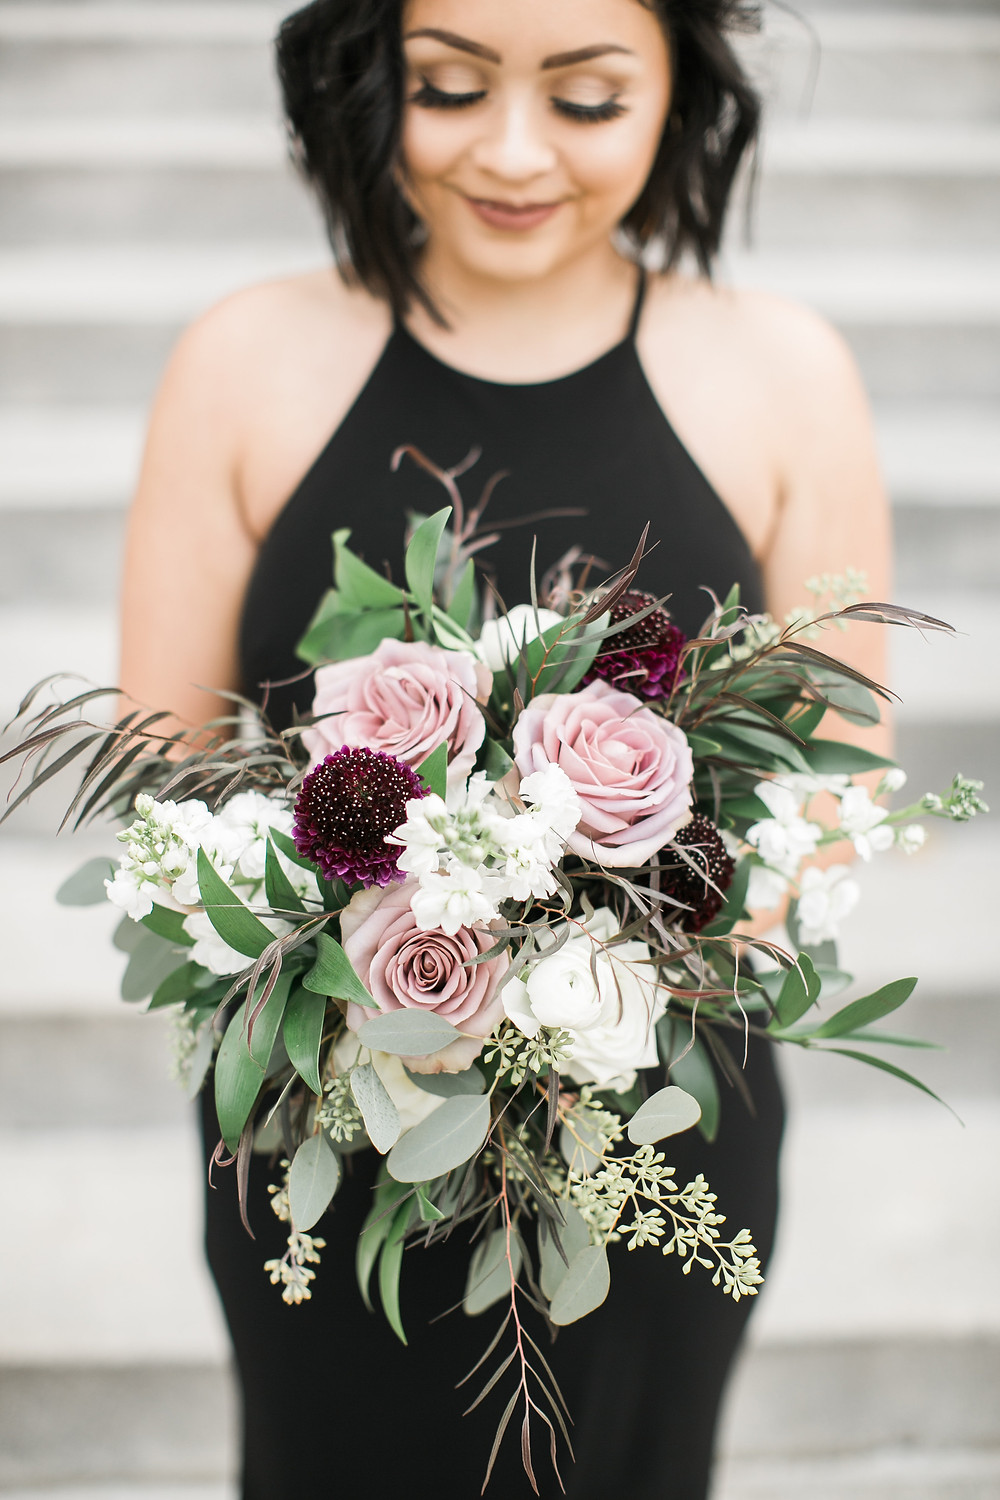 bridesmaid bouquet by studio bloom iowa of mauve roses, burgundy ranunculus, white stock, and greenery wearing black dress